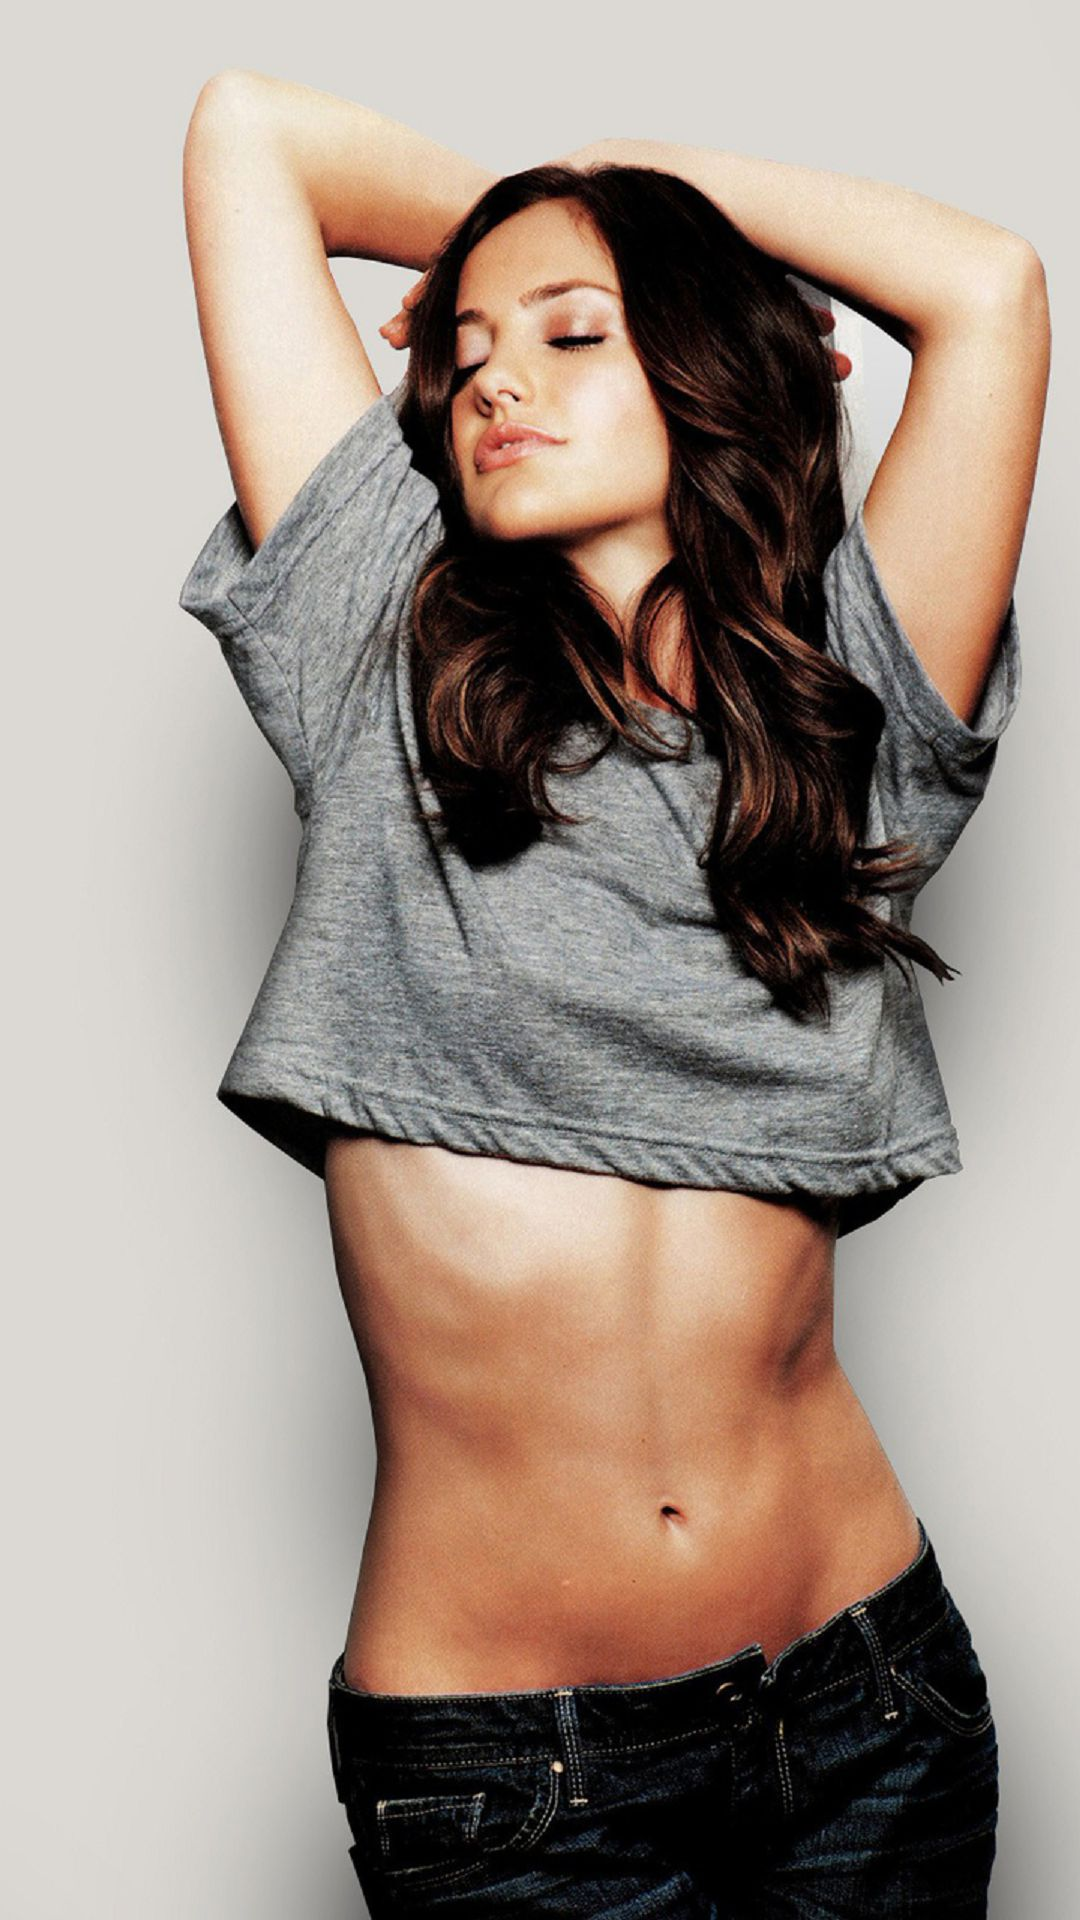 Minka Kelly Sexy Best Htc One Wallpapers Free And Easy To Download